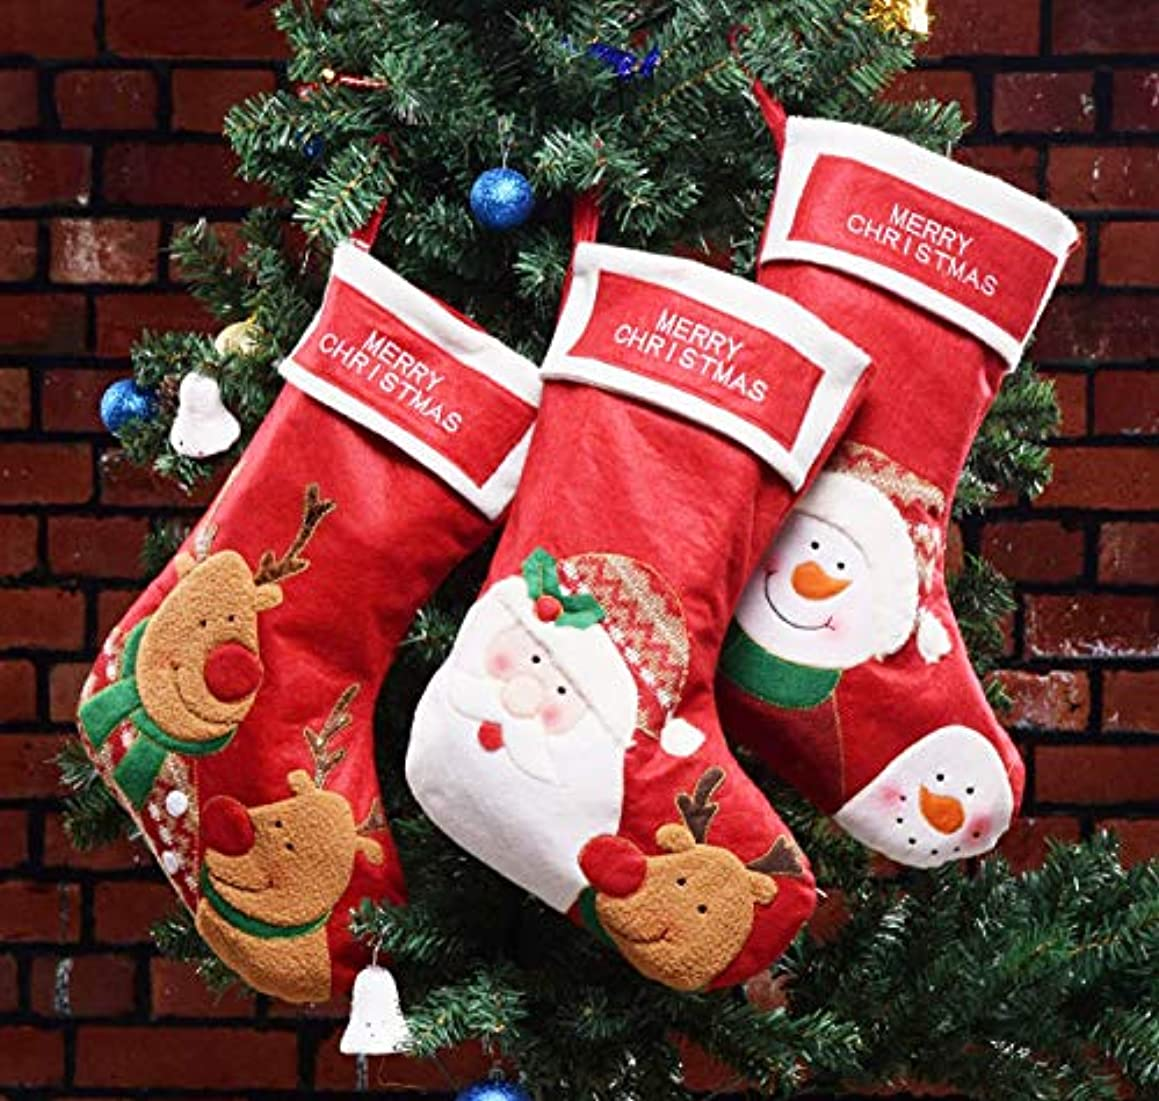 Shelly Christmas Stocking,3 Pcs Set of 18 Big Size Santa Snowman Reindeer Xmas Character 3D Plush Faux Fur Cuff Christmas Decorations Party Accessory.